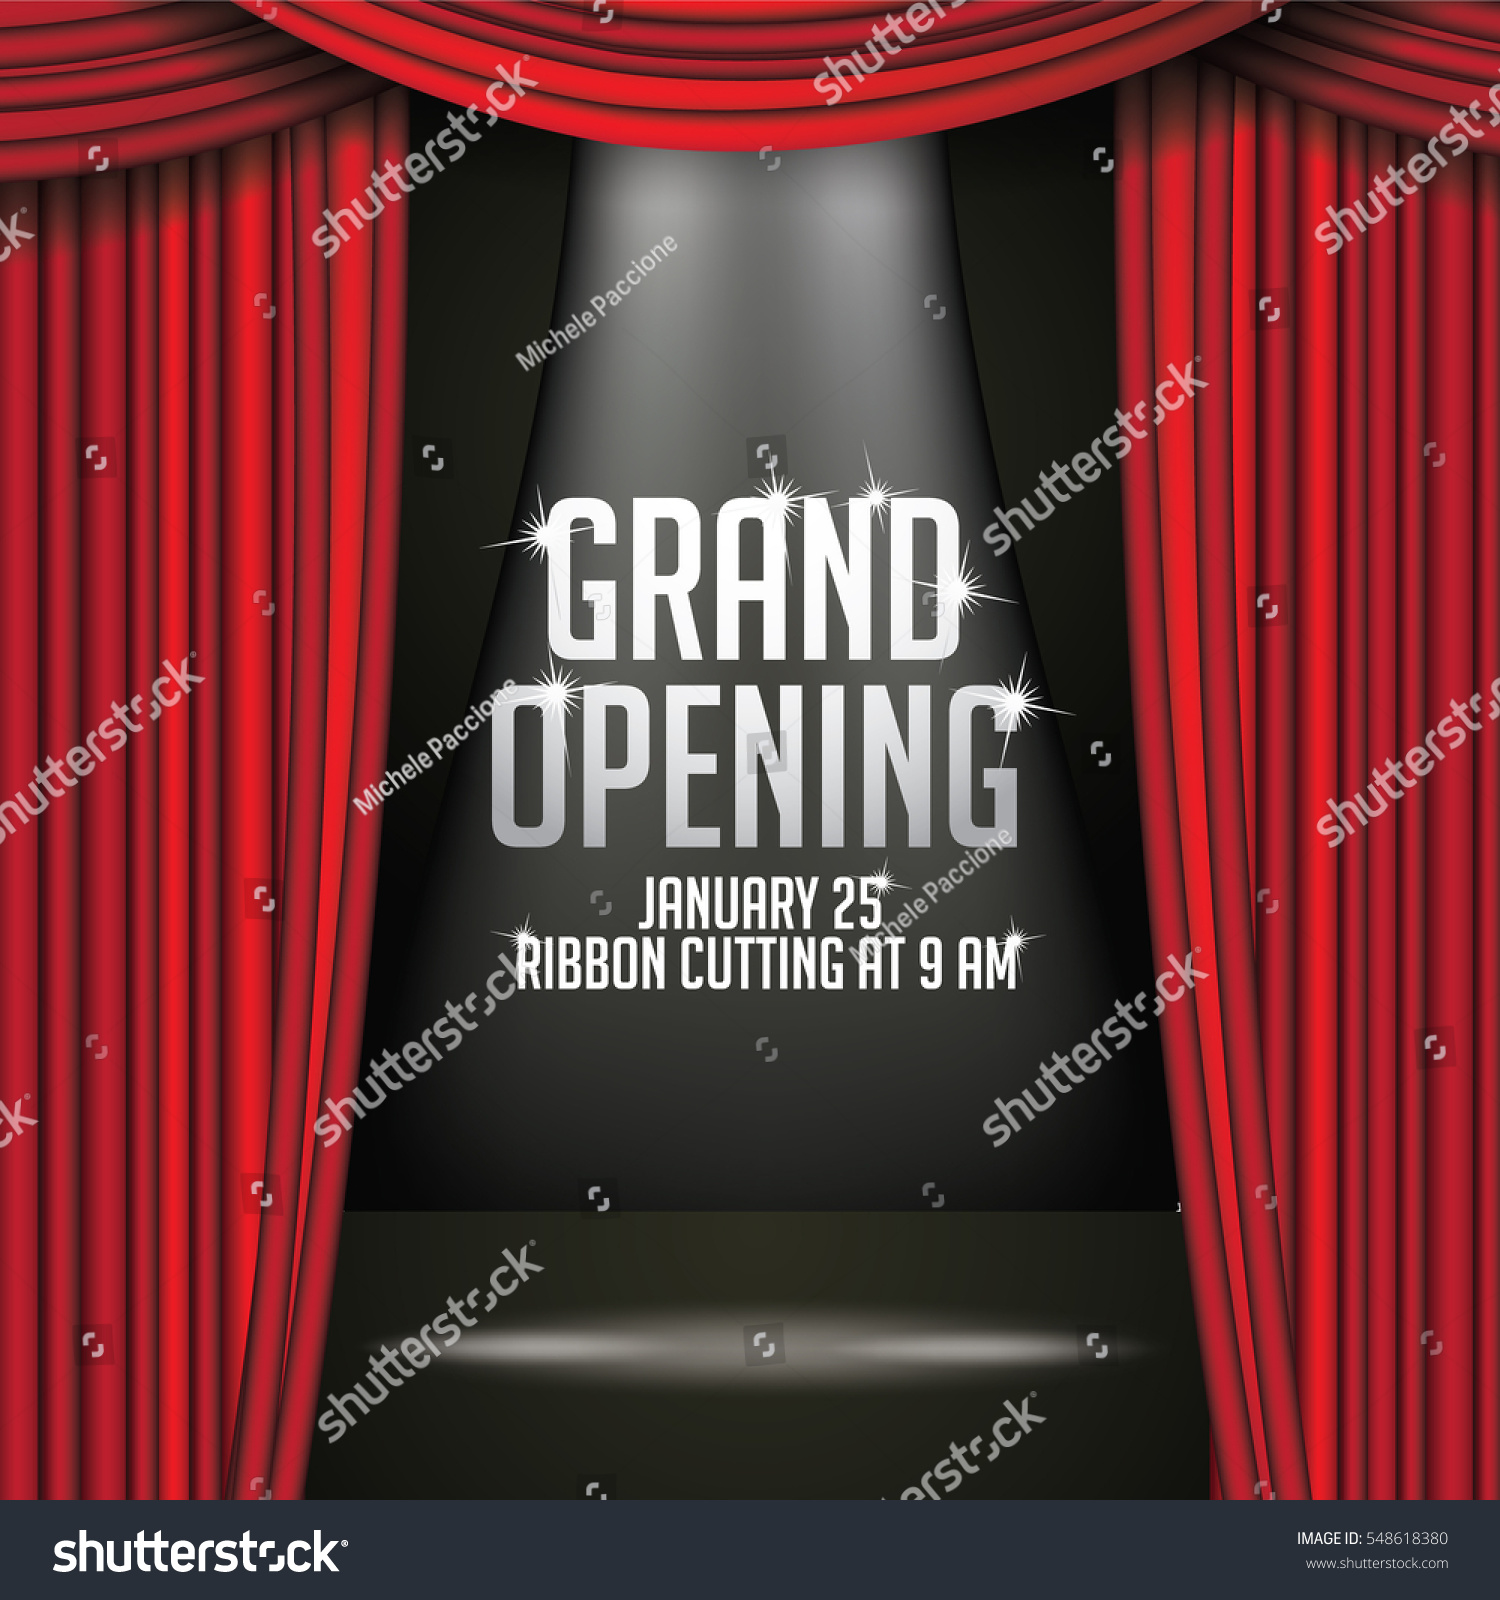 Stage curtain background open stage curtains background red stage - Luxurious Red Curtains Background Template Grand Opening Announcement With Dramatic Movie Or Stage Curtains